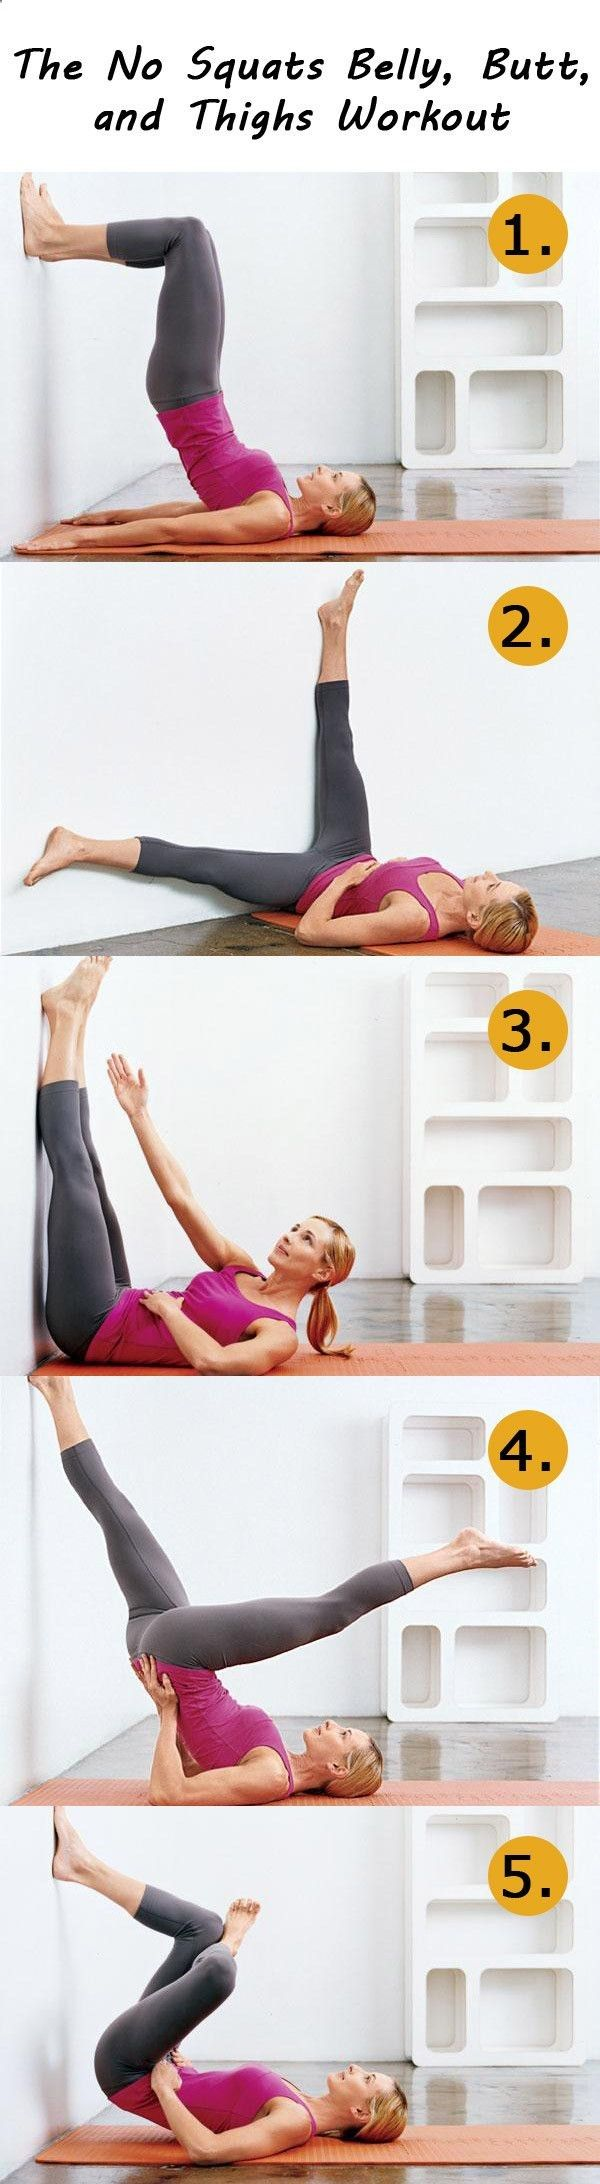 flatten your belly, slim your thighs, and firm your butt in 2 weeks! because squats aren't really good for your lady parts.